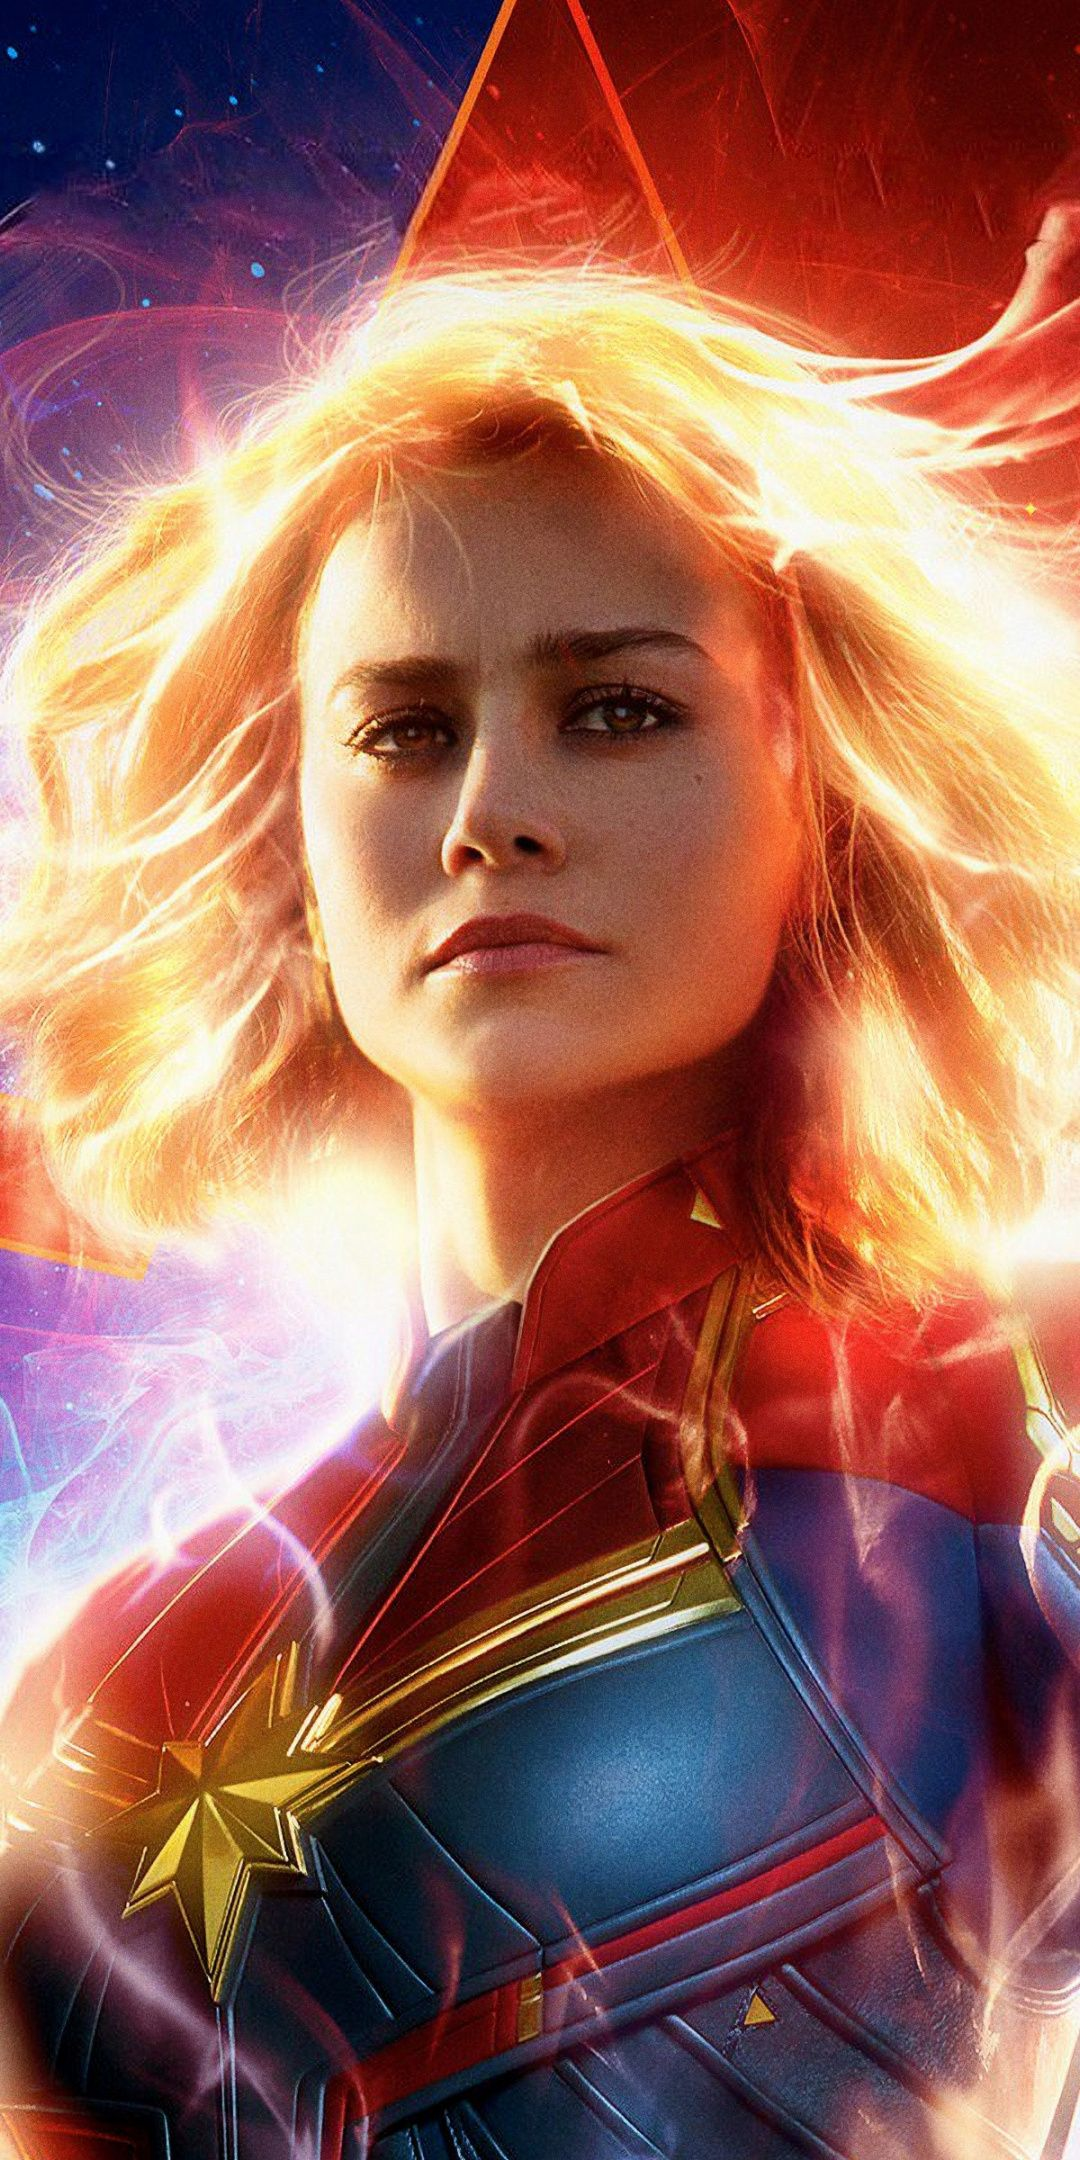 Captain Marvel Brie Larson 2019 1080x2160 wallpaper Celebrity 1080x2160